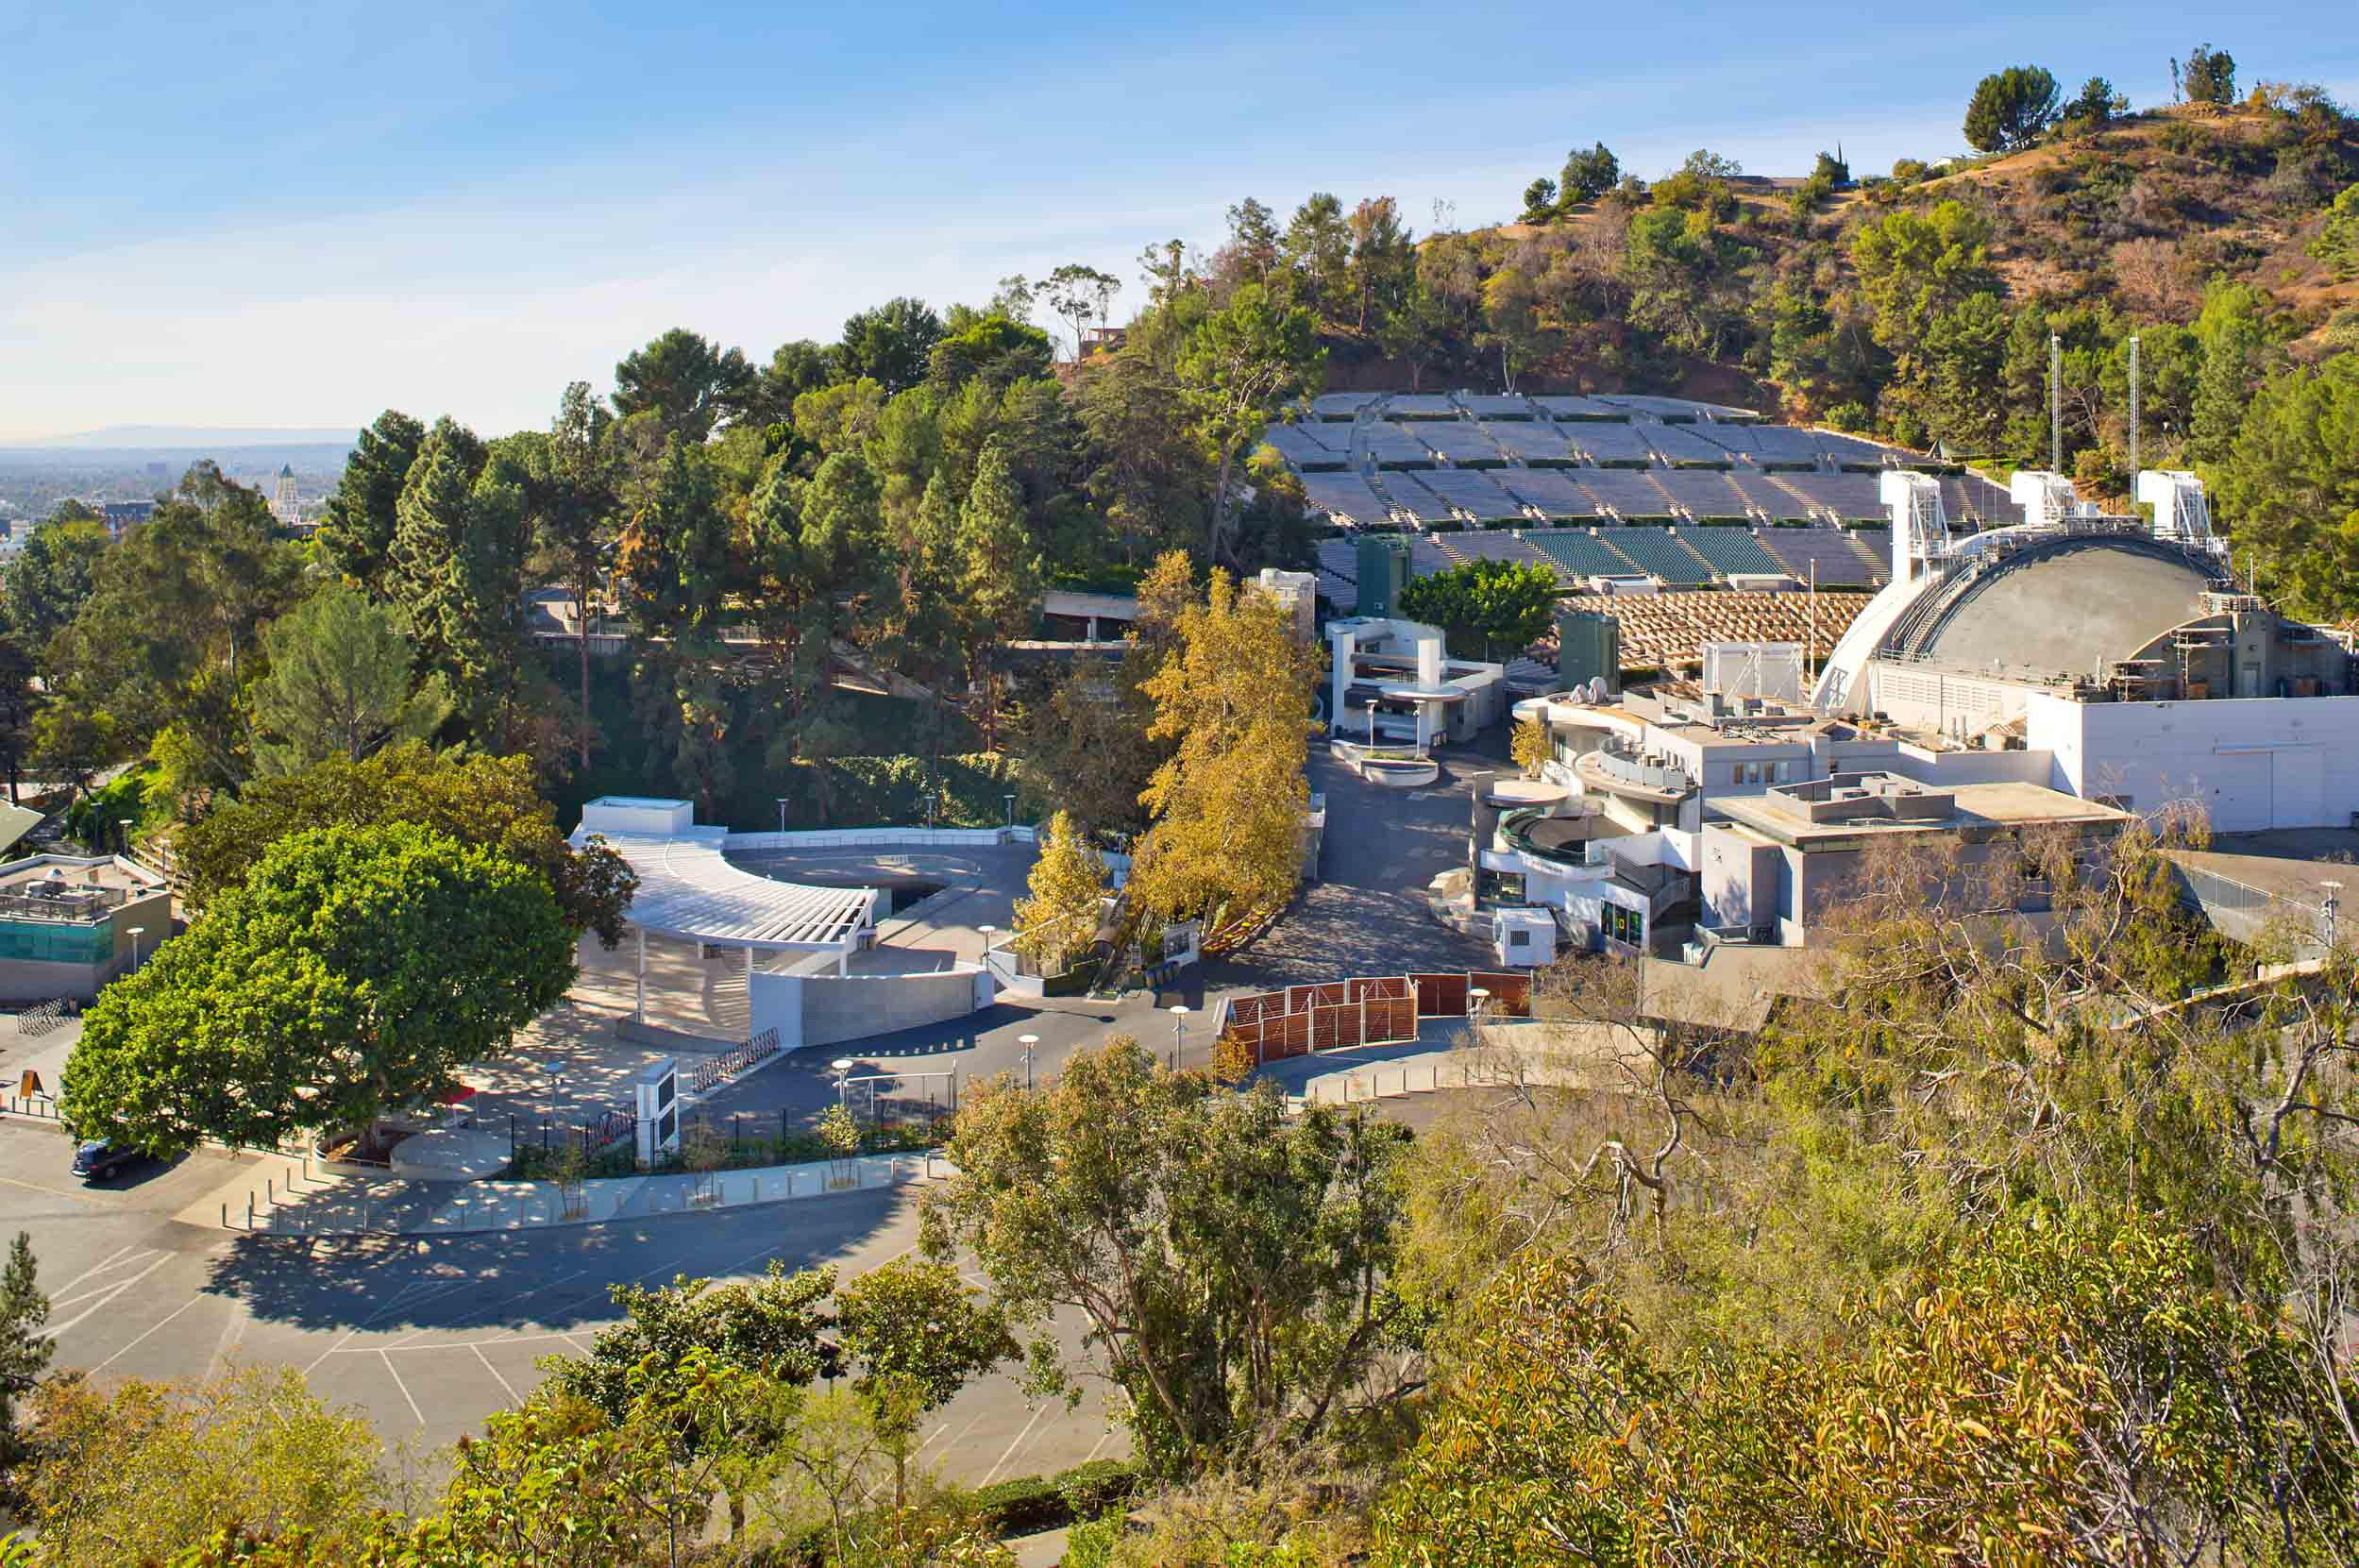 A view of the Hollywood Bowl from above